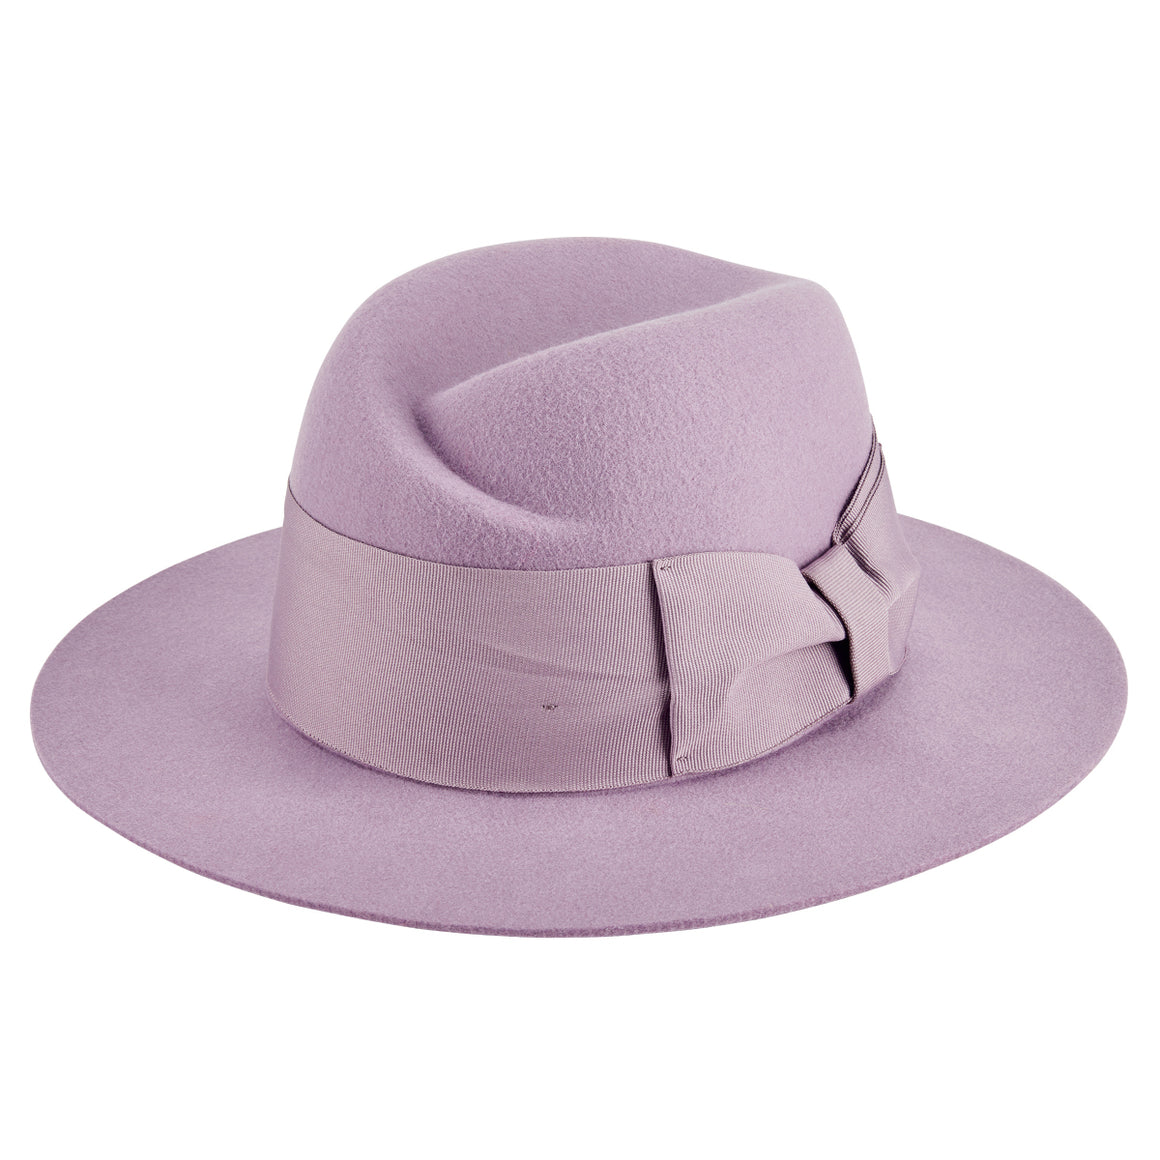 Lavender Fedora by San Diego Hat Co.